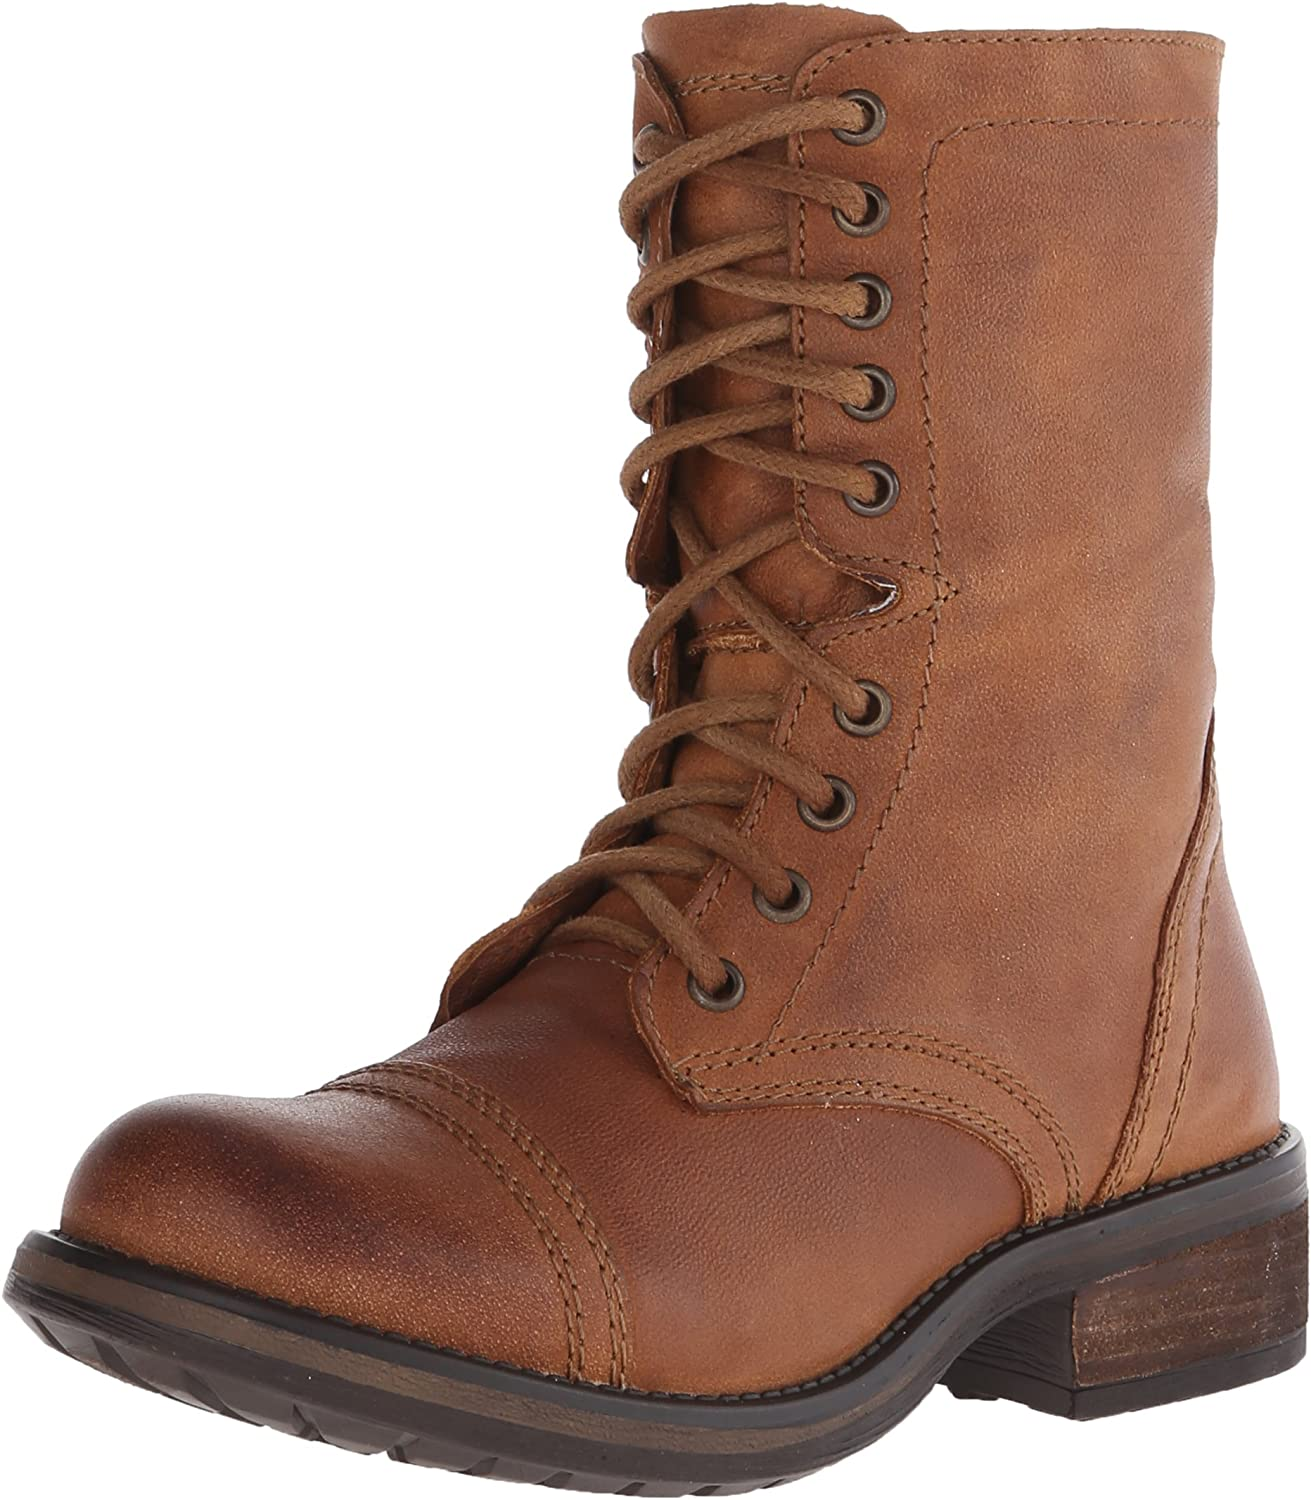 Today's only Steve Madden Some reservation Women's Troopa Combat 2.0 Boot